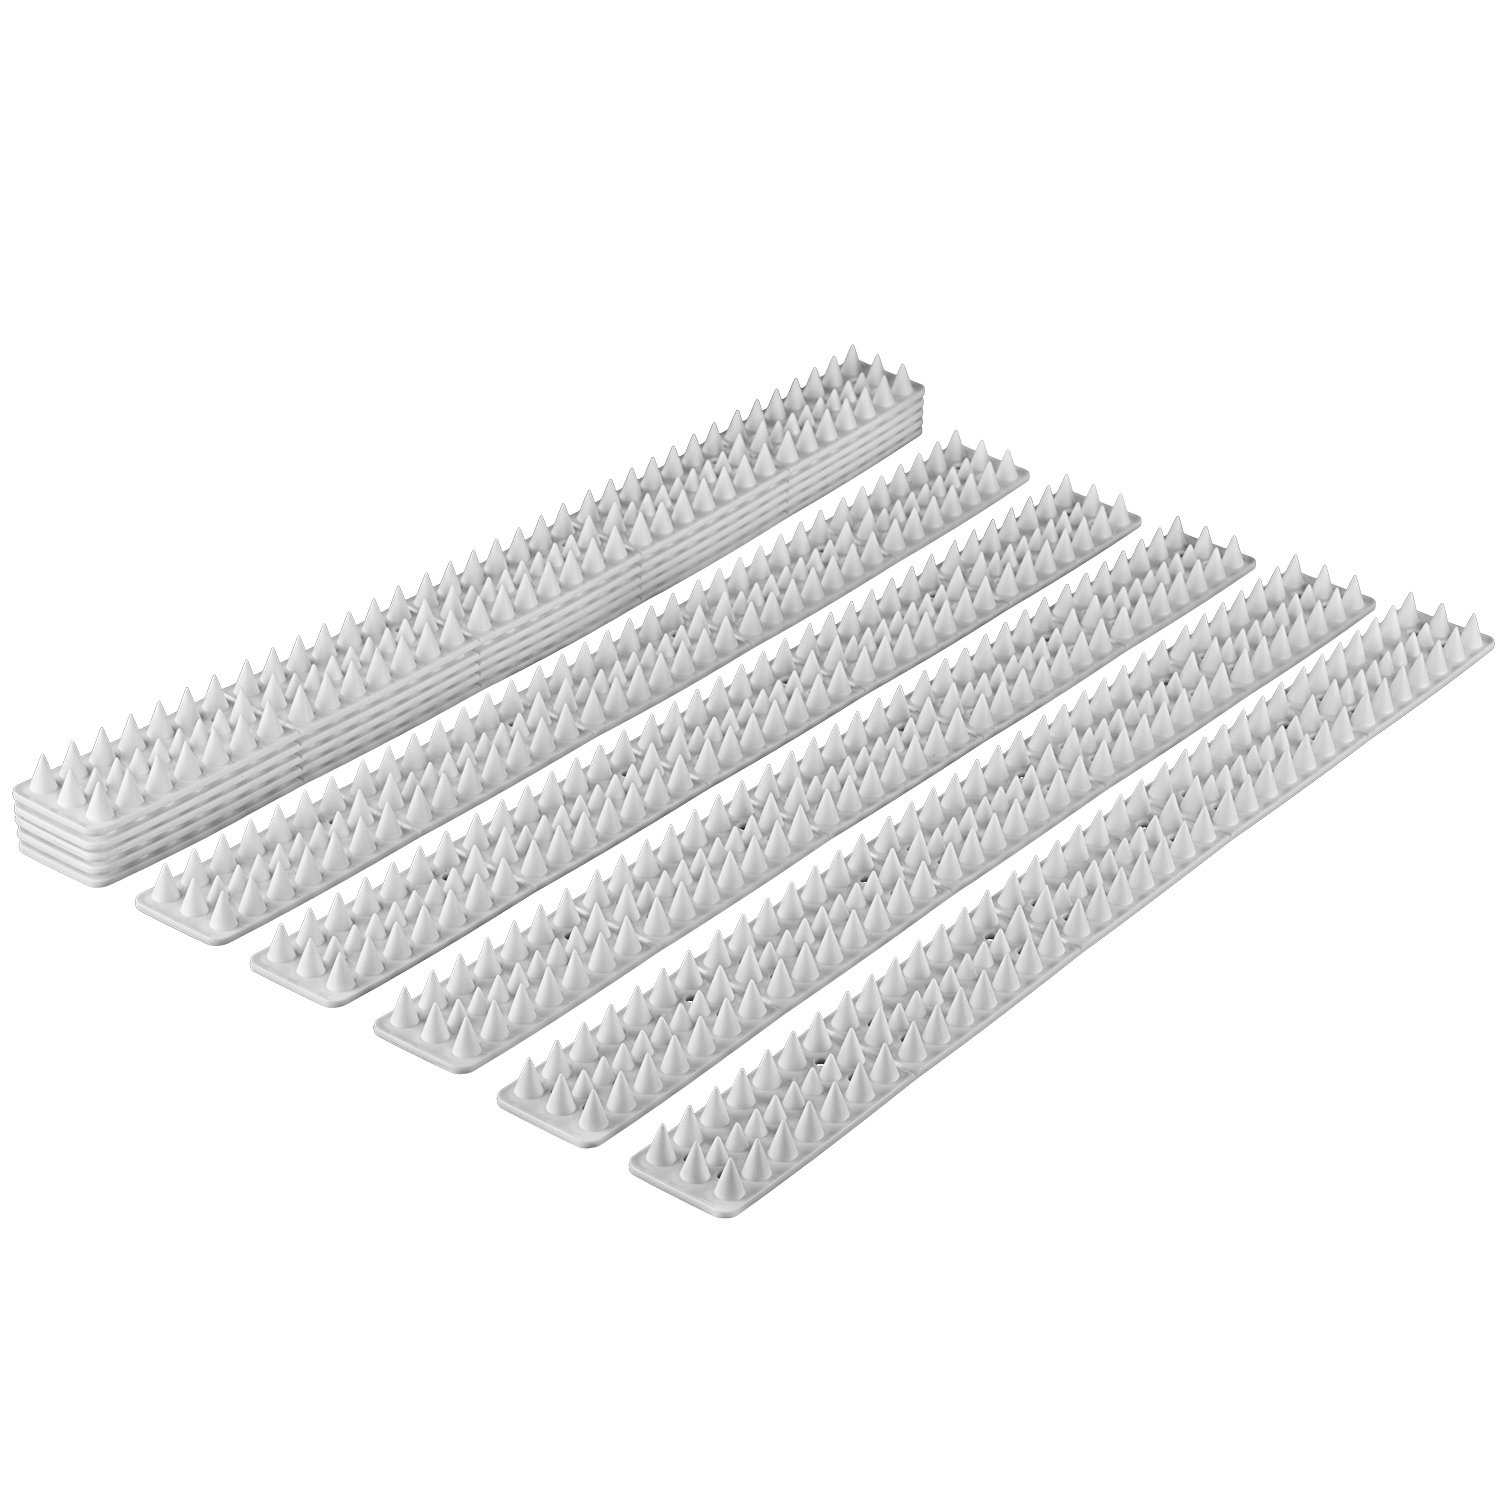 Abco Tech Bird Spikes - Set of 10 x 48.8 cm Anti-Climbing Security for Your Fence, Walls and Railings to Prevent Human Intruders, Animals or Birds - for a Safe and Secured Perimeter - No Tools Needed by Abco Tech